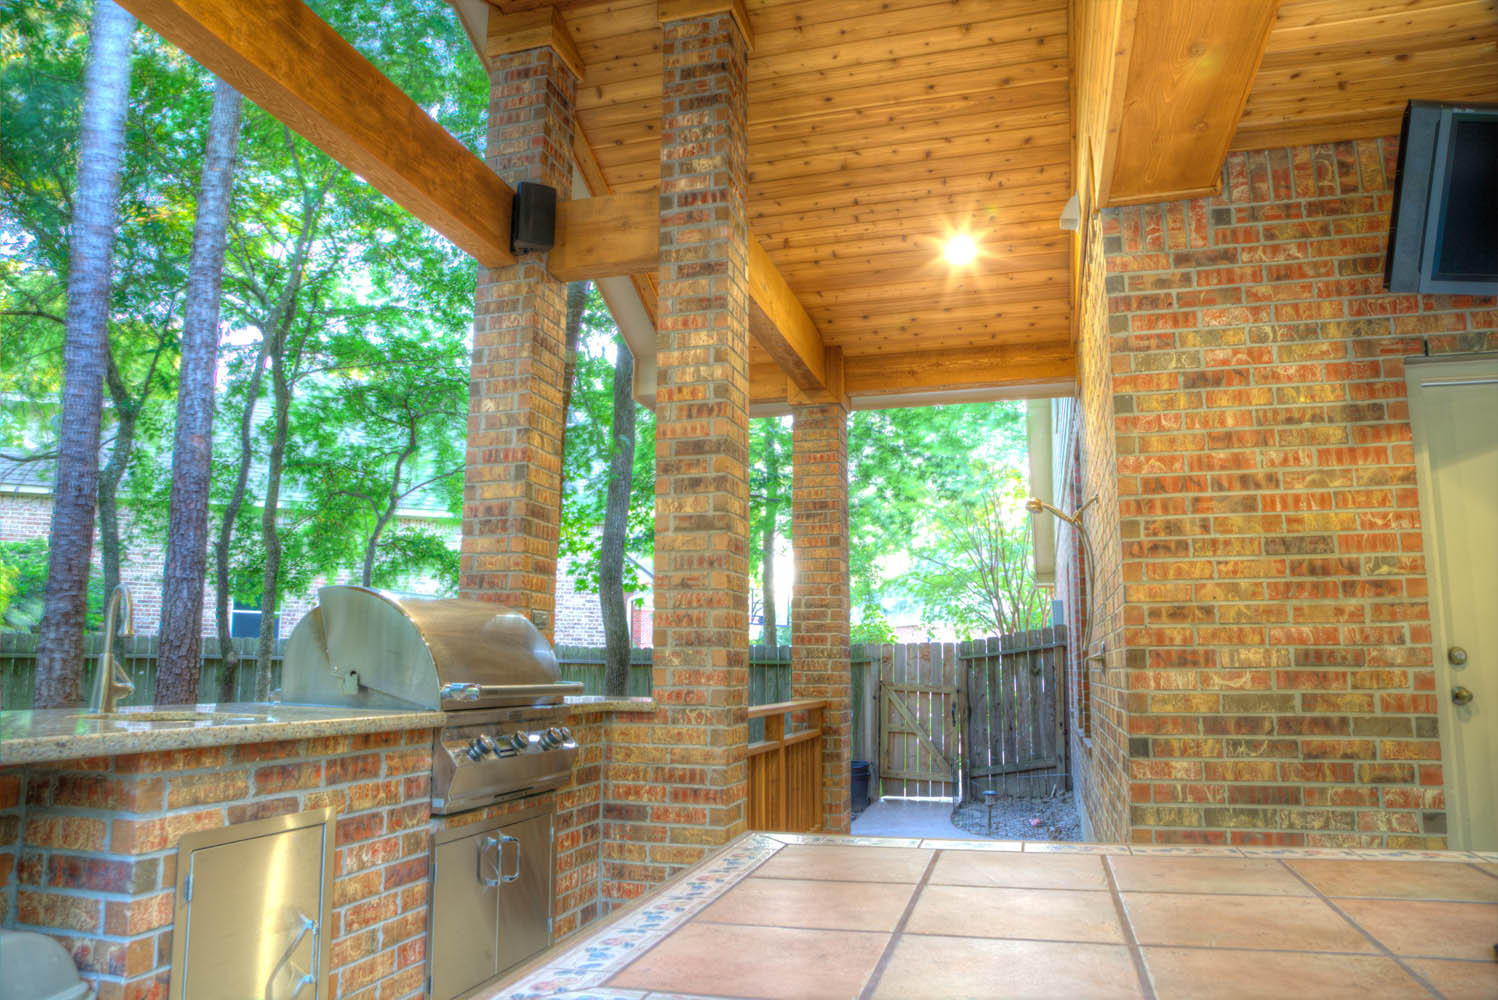 Brick Outdoor Kitchen With Stainless